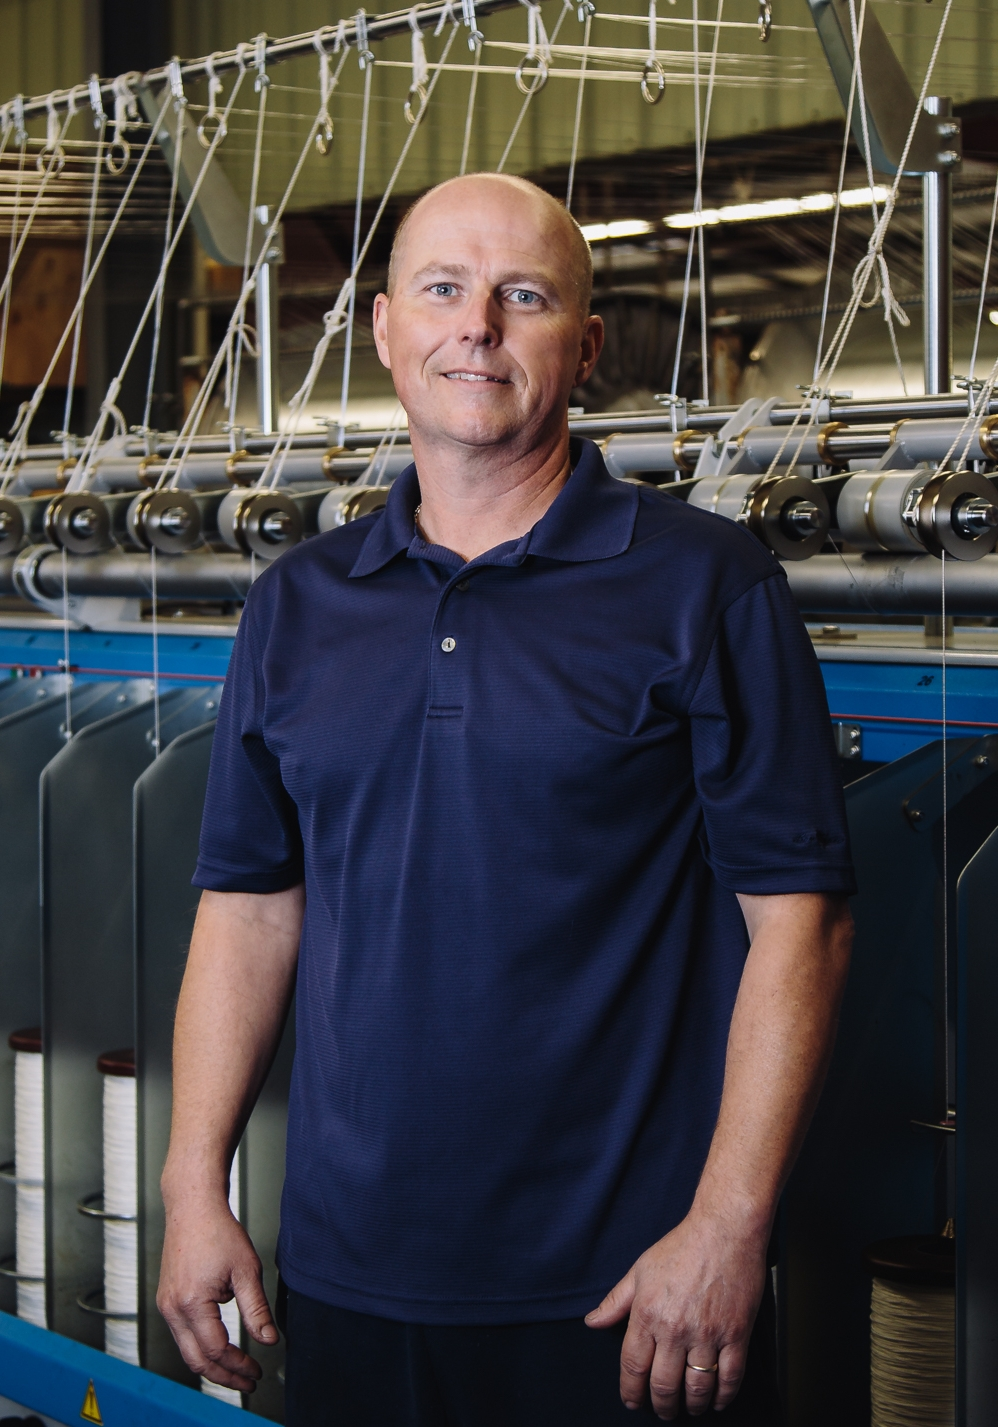 Chris Berg - Production Manager - Chris is another of our long tenured employees that has been with us for over 30 years. Over that time he has accumulated a deep knowledge of various rope constructions, fiber characteristics, and the fabrication abilities of our plant. We rely on Chris to keep our general production running and to provide his expertise in new product developments and improvements. Chris is an avid outdoorsman and you can often find him coaching or attending his daughter's softball games.